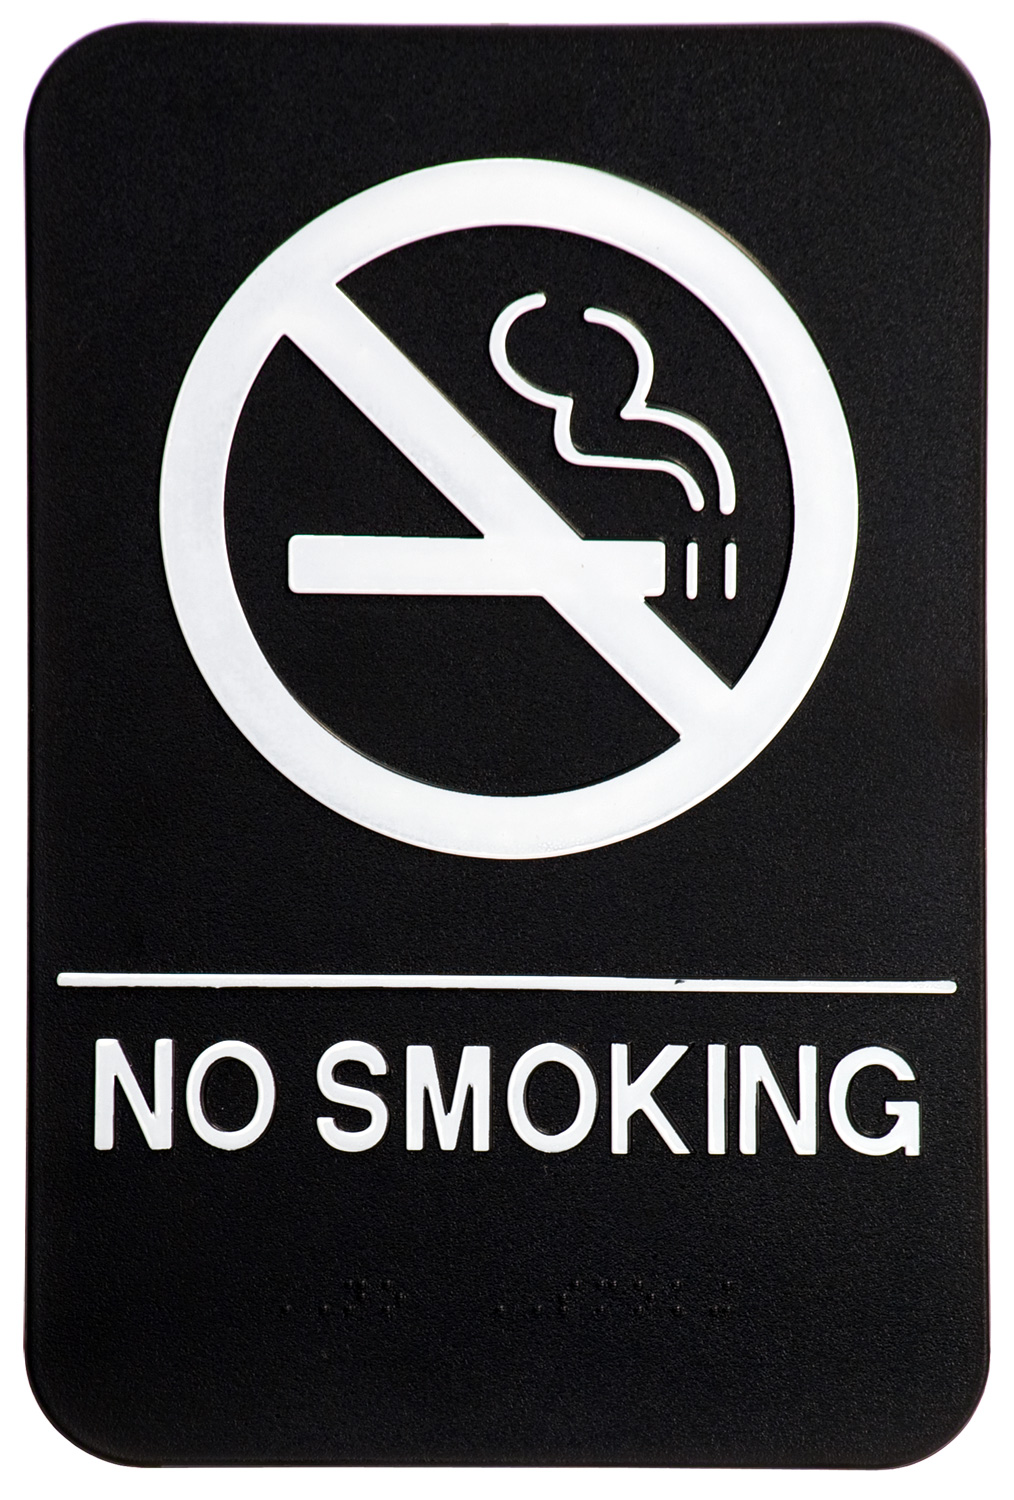 No Smoking Black